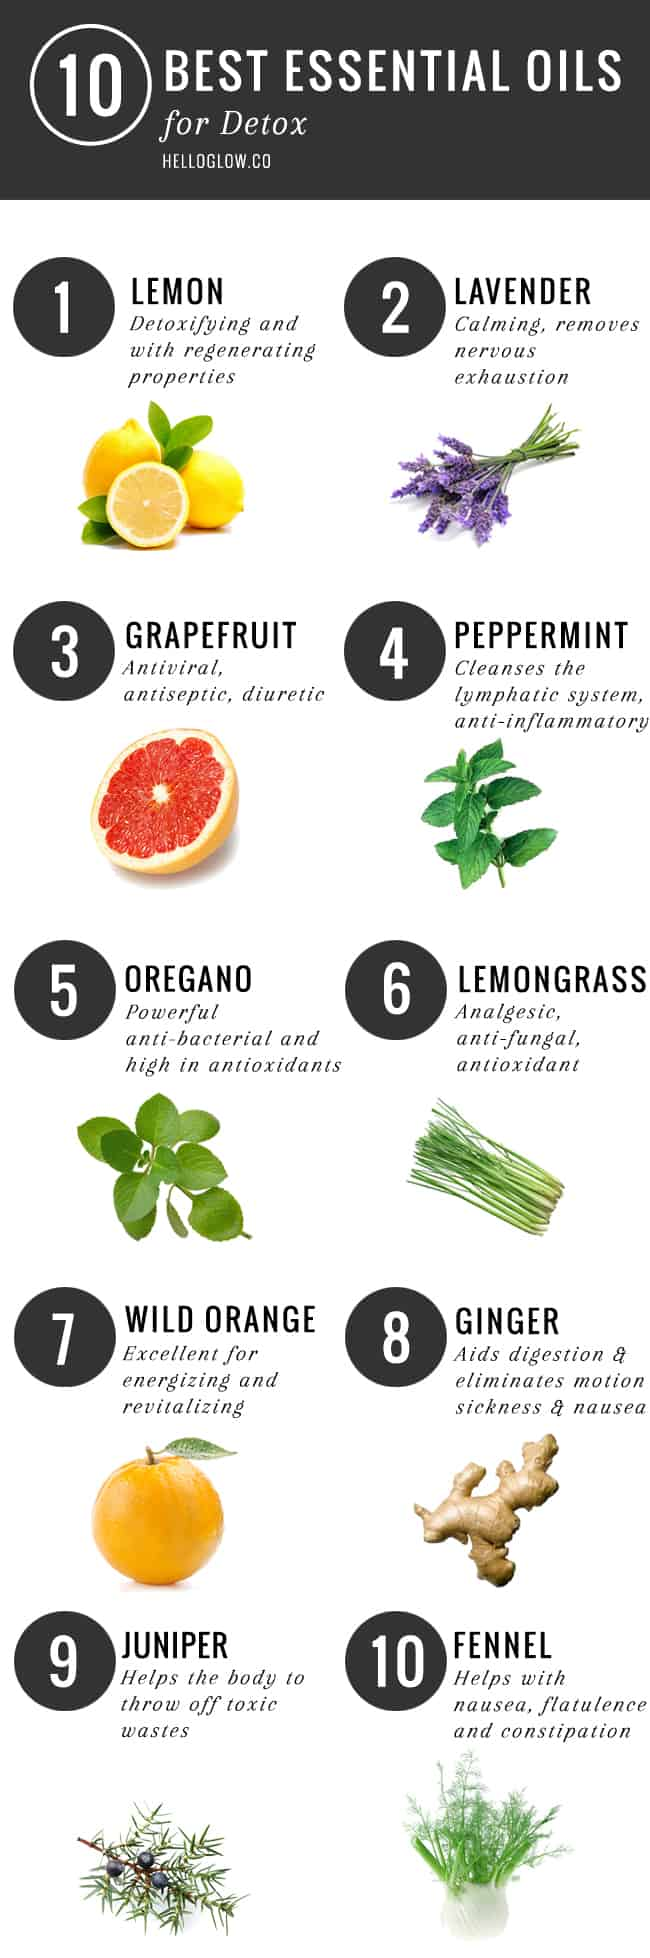 Best Essential Oils for Detox